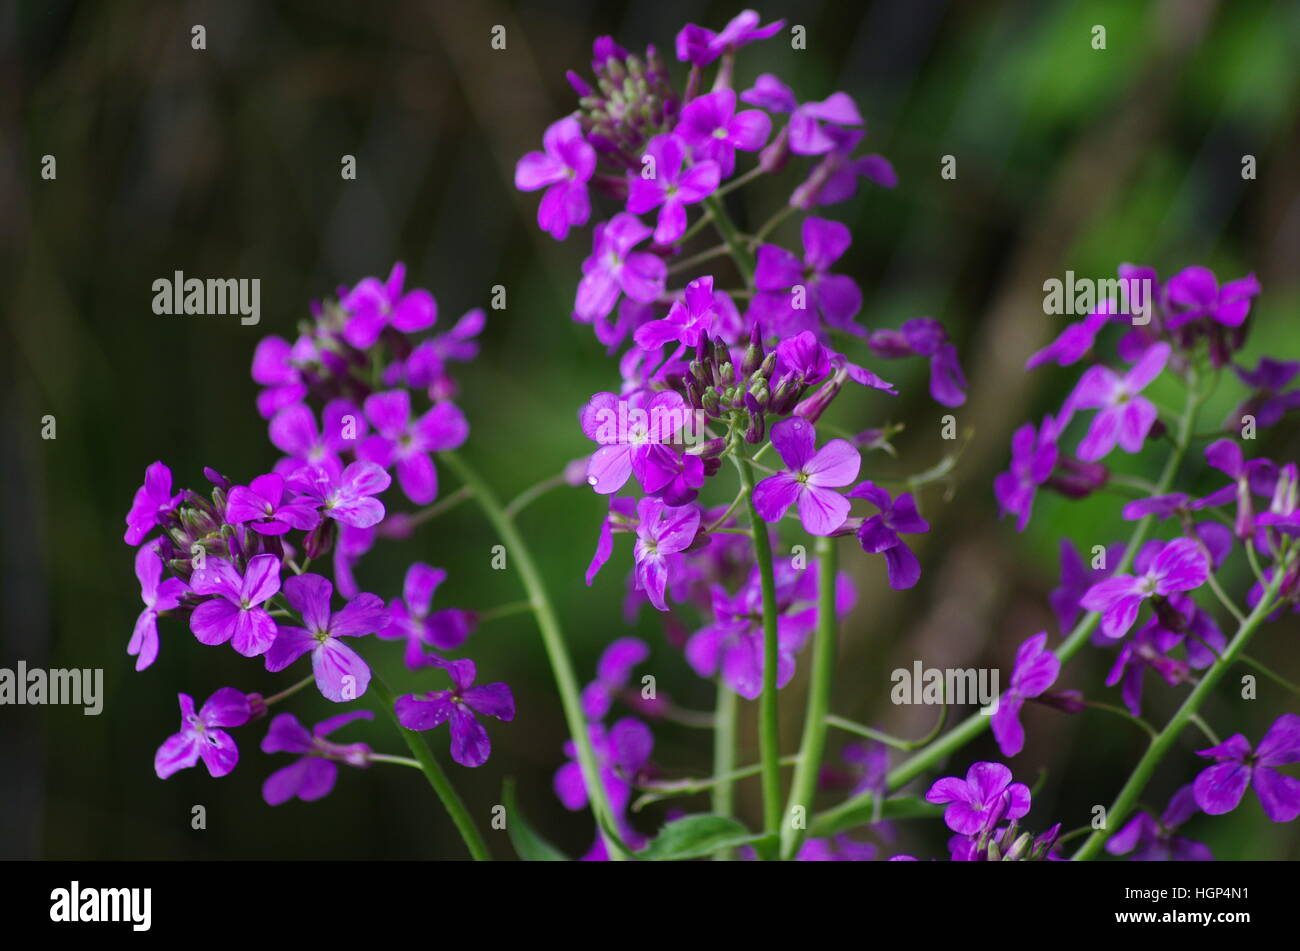 Bright Small Clusters Of Purple And White Flowers On Green Stems In